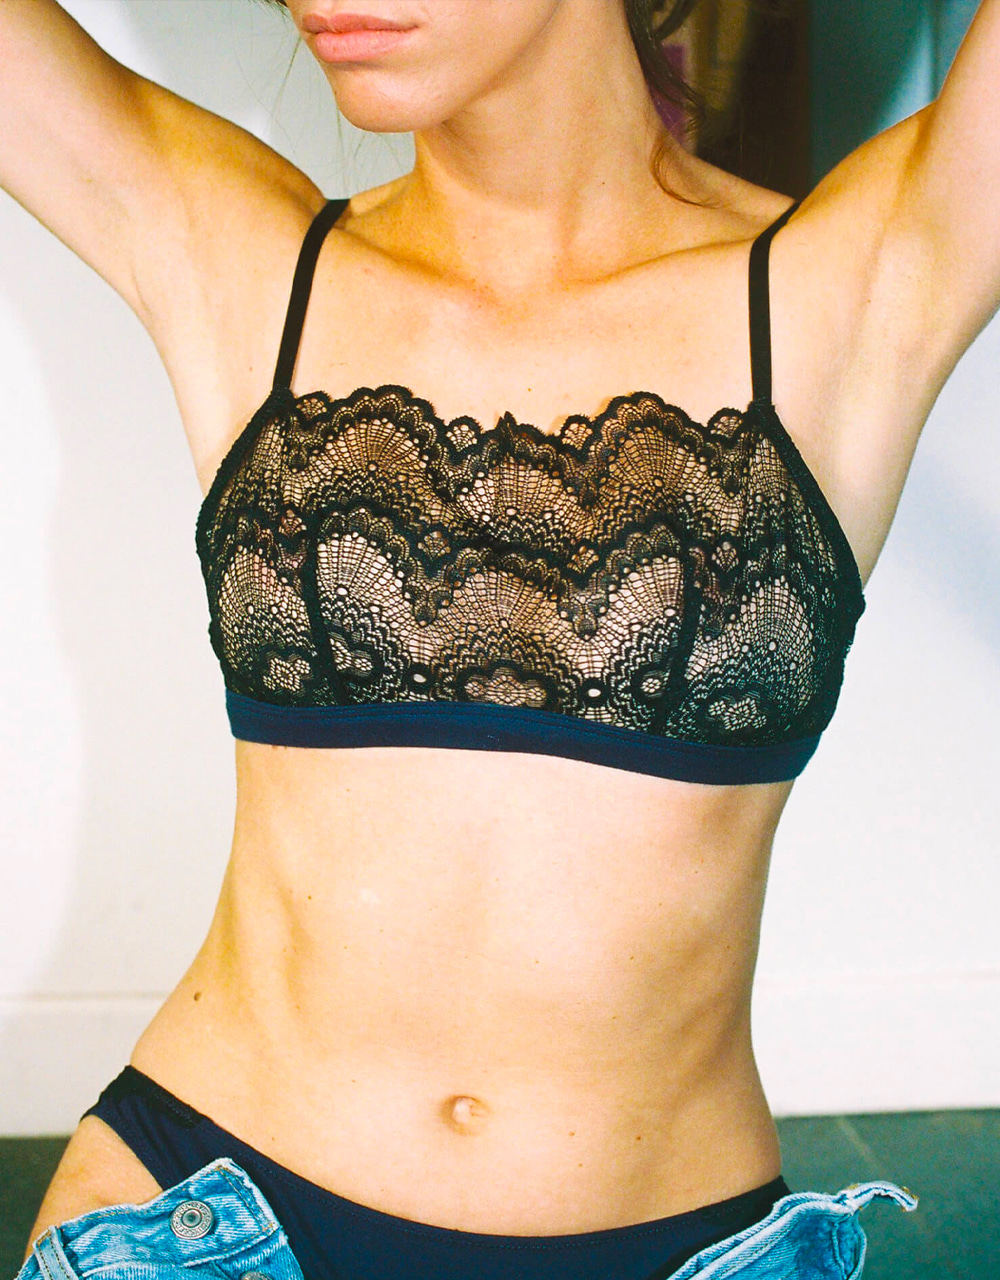 lingerie soutien-gorge sans armatures Gaby Black Iris 39 € Girls In Paris photo 2